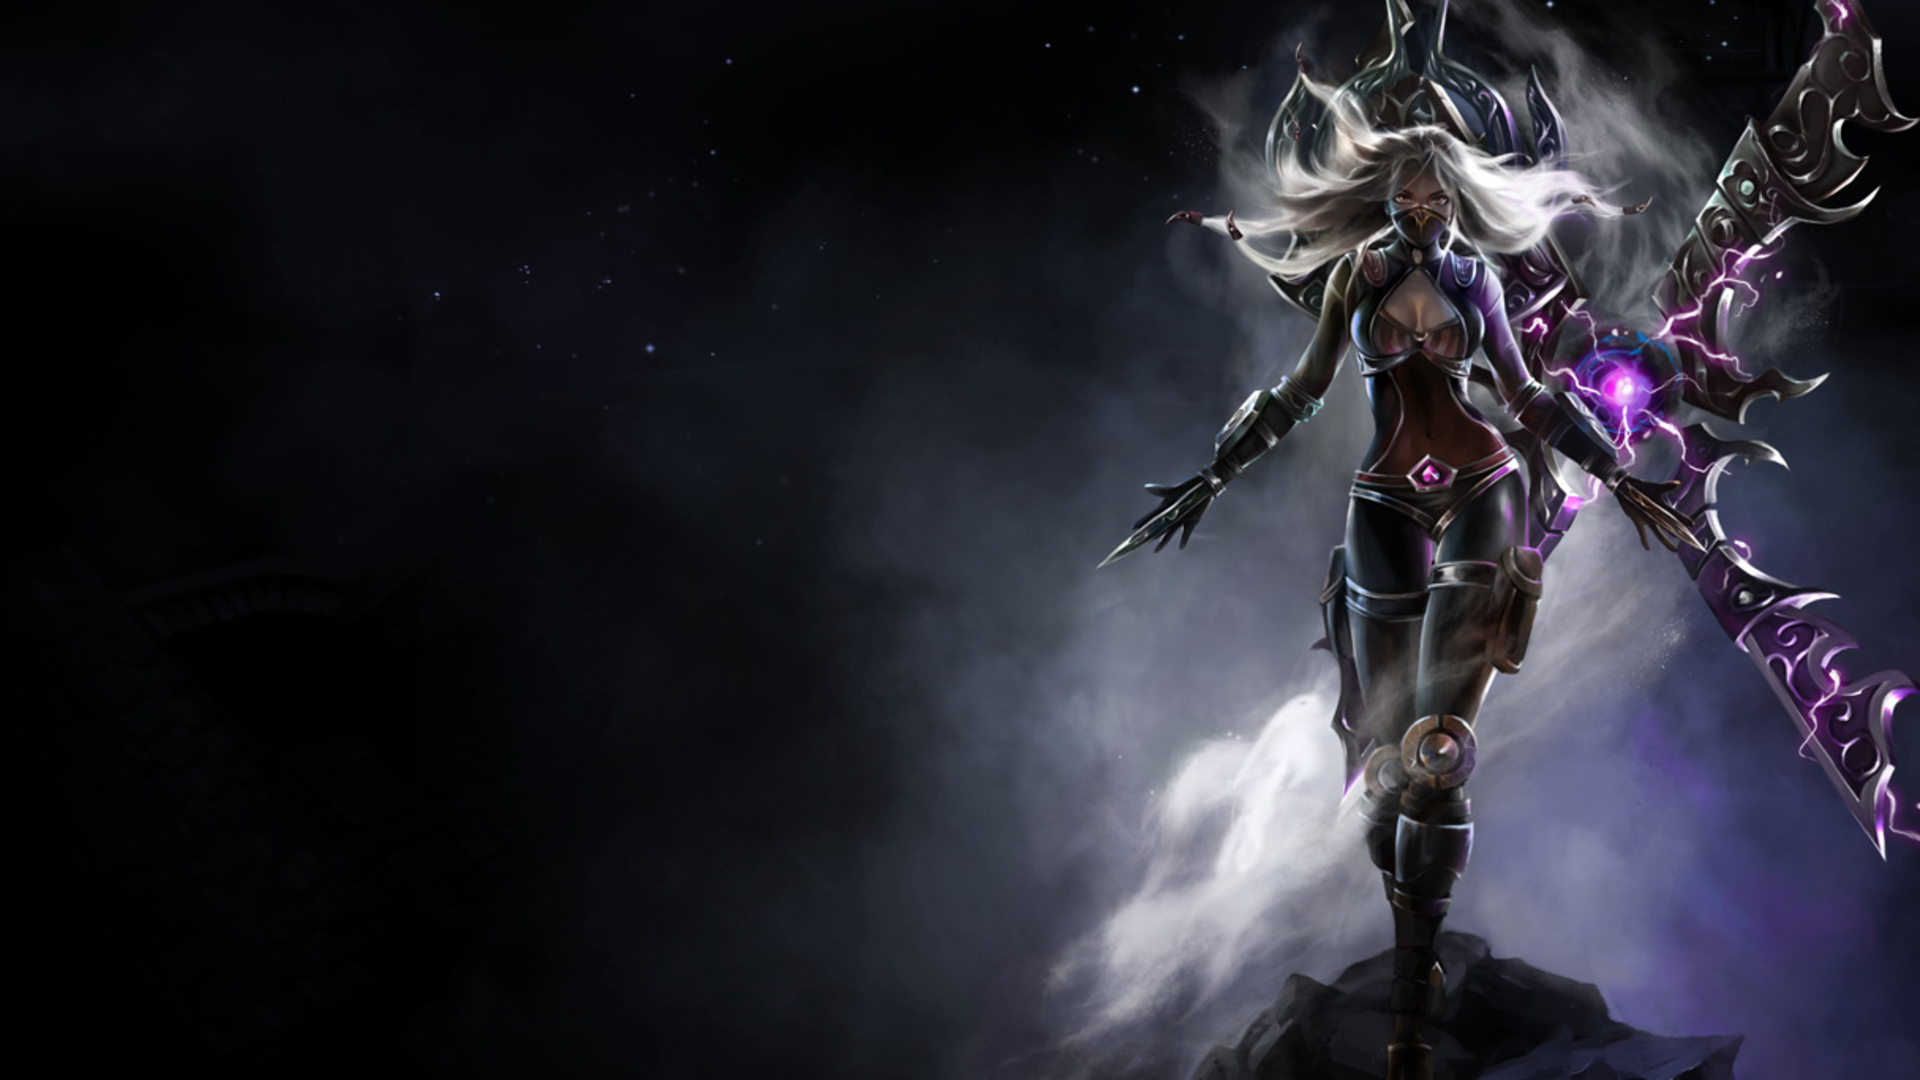 League of legends lol wallpapers best wallpapers league of legends lol background voltagebd Image collections